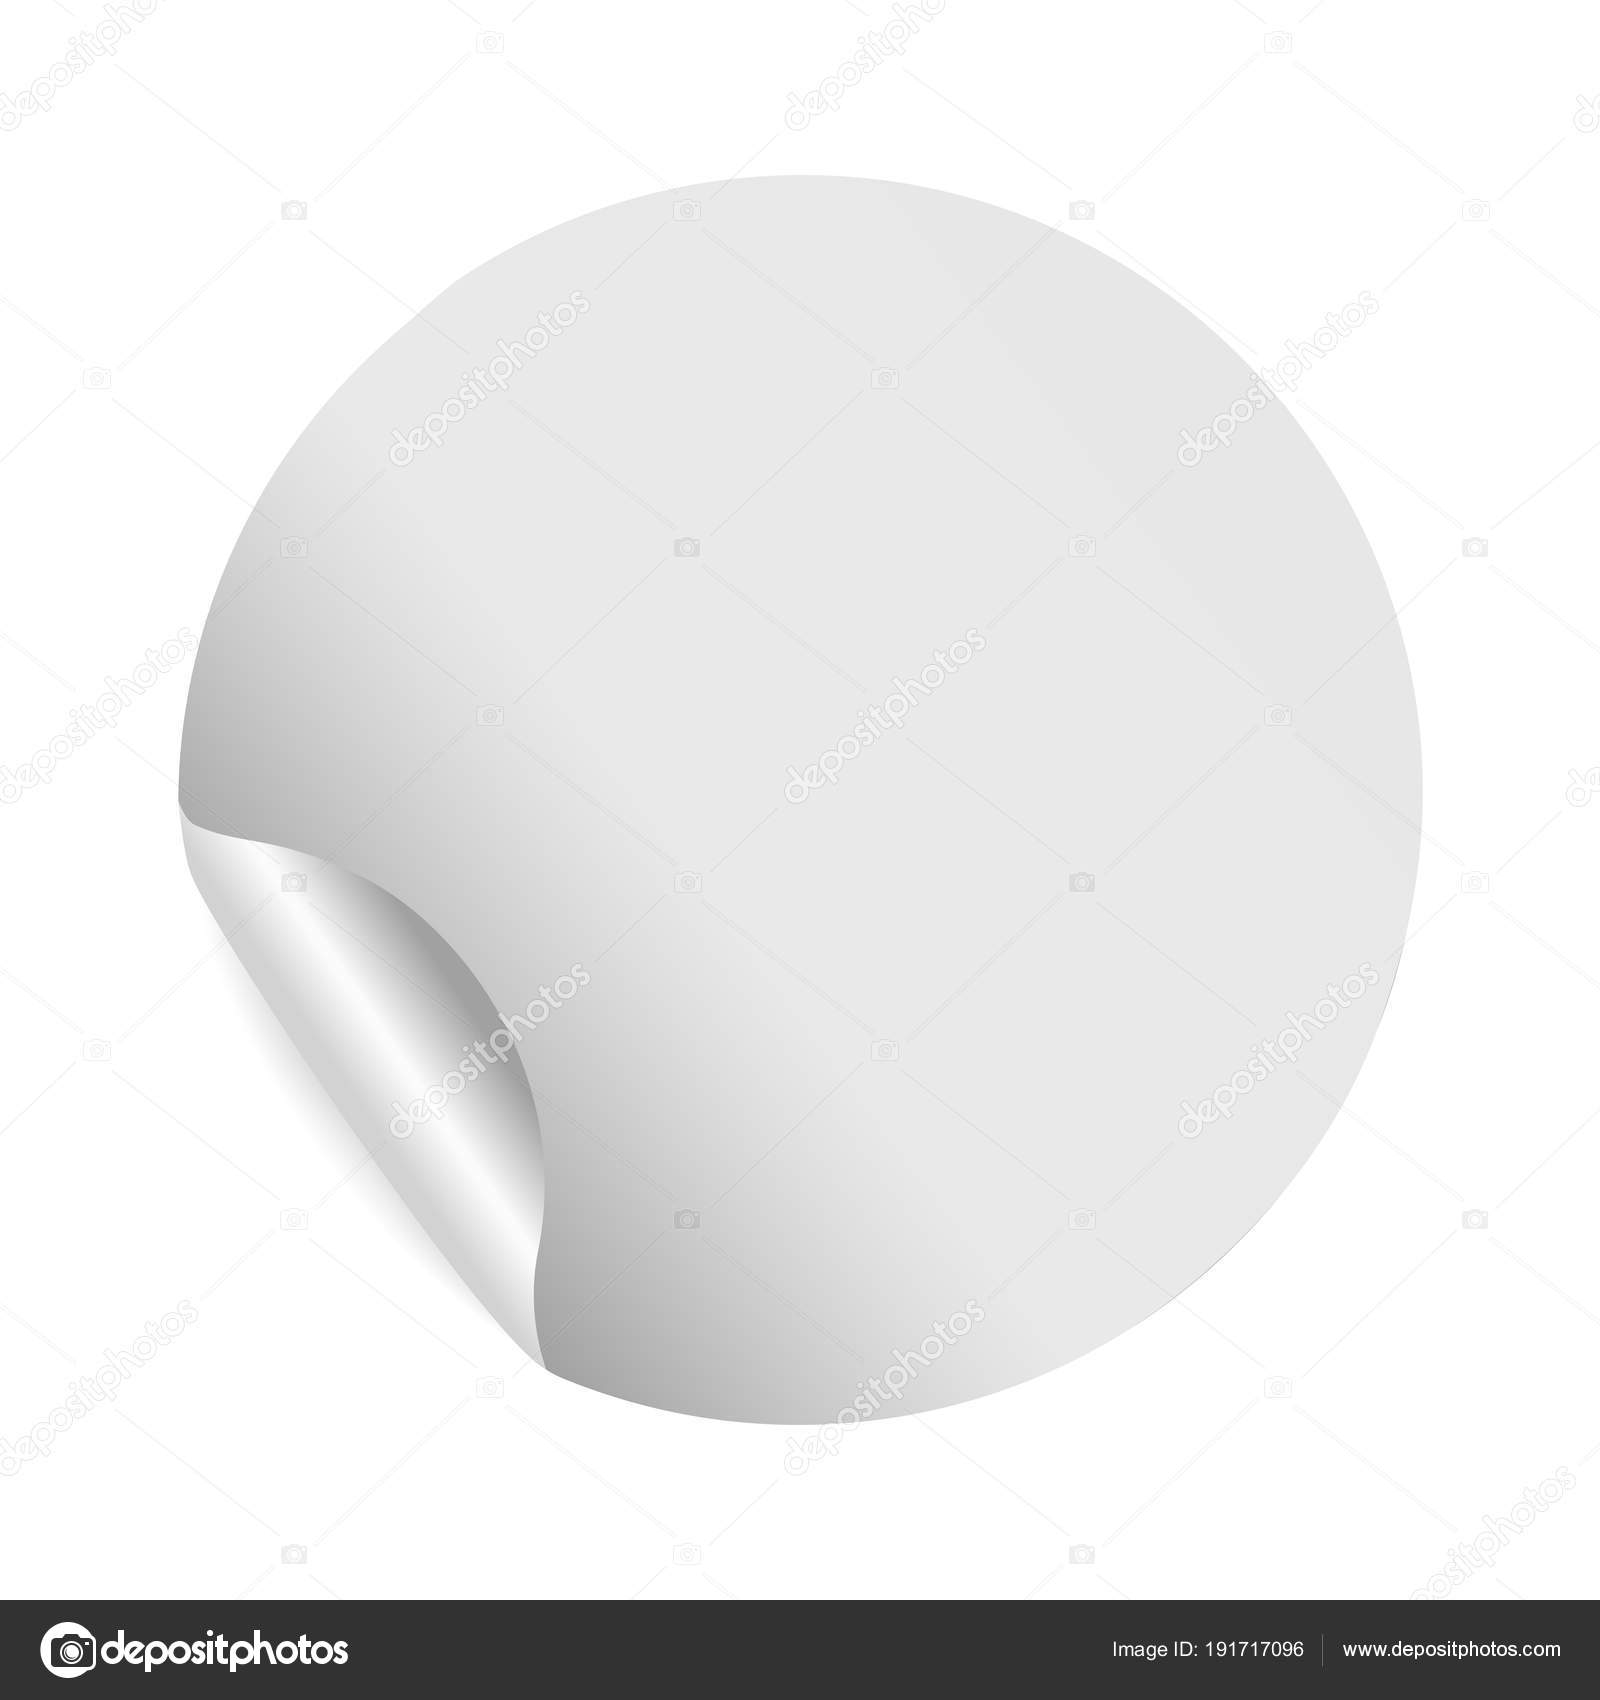 Realistic blank round paper sticker template with bent edge on white ...